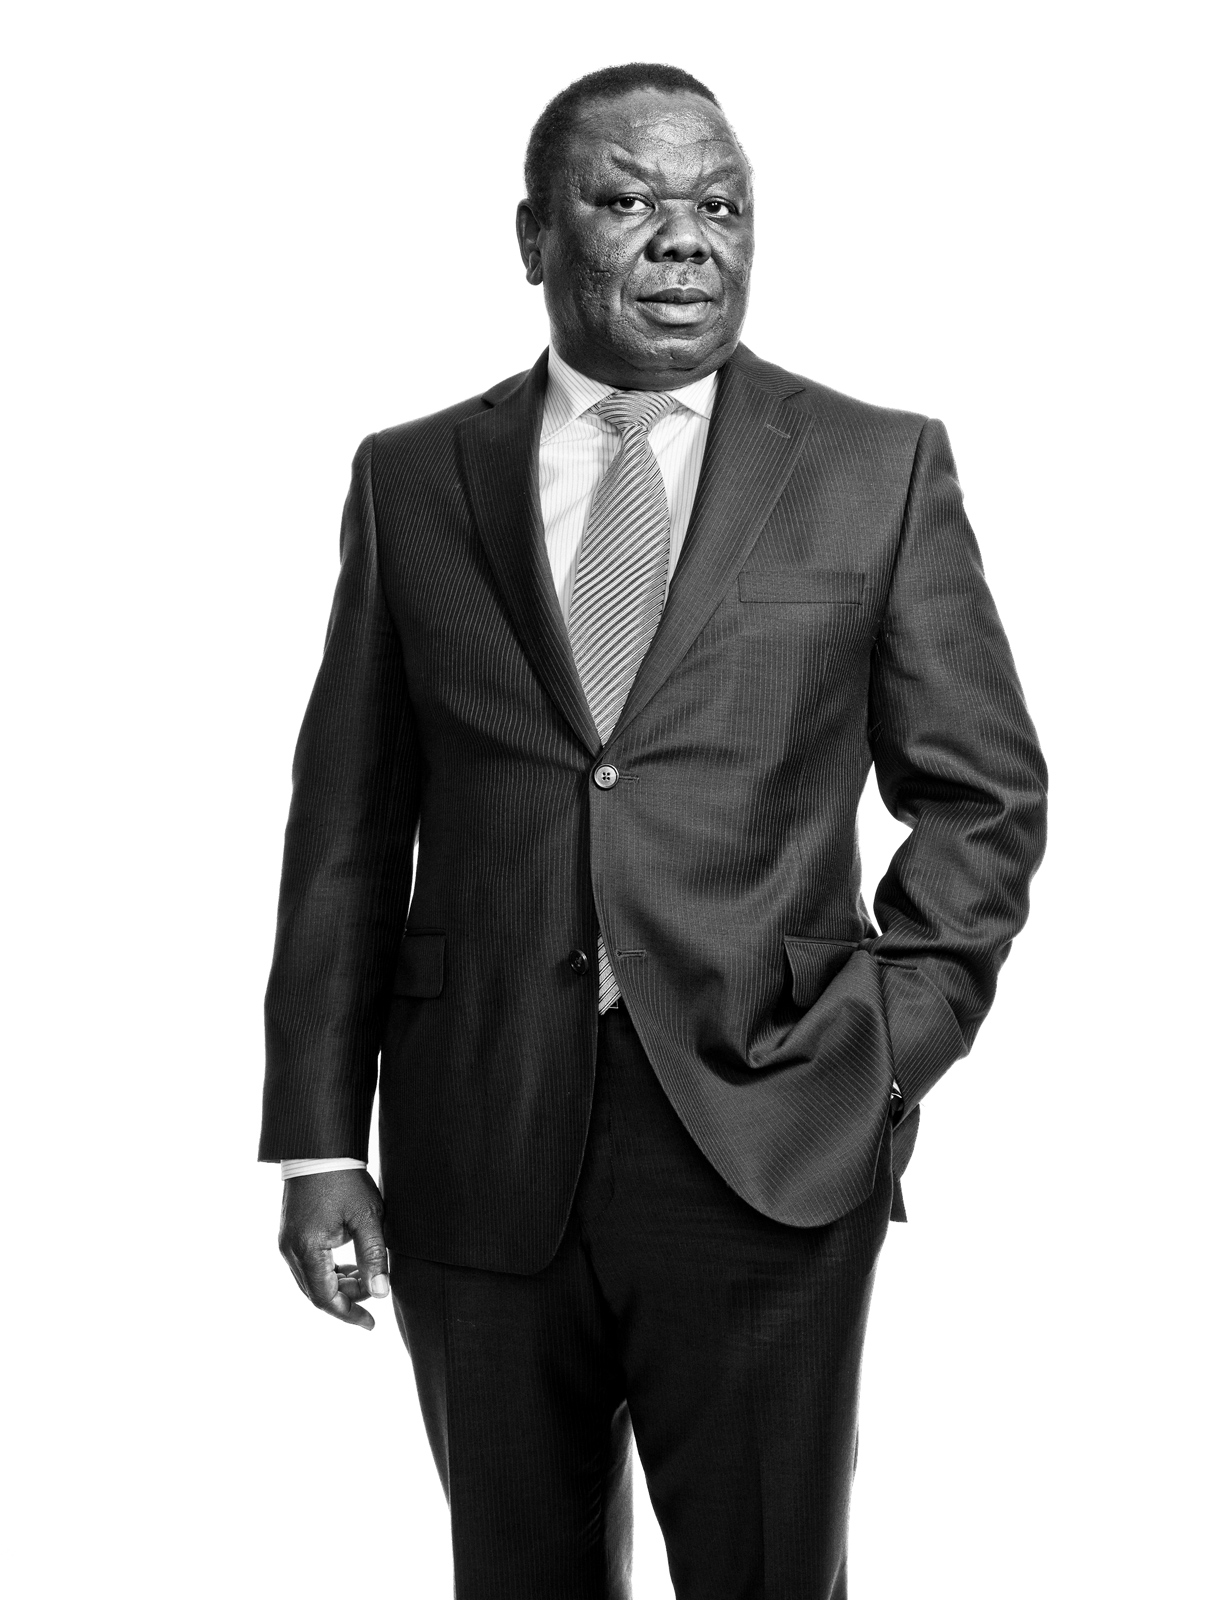 Prime_Minister_Morgan_Tsvangirai9948_updated_2